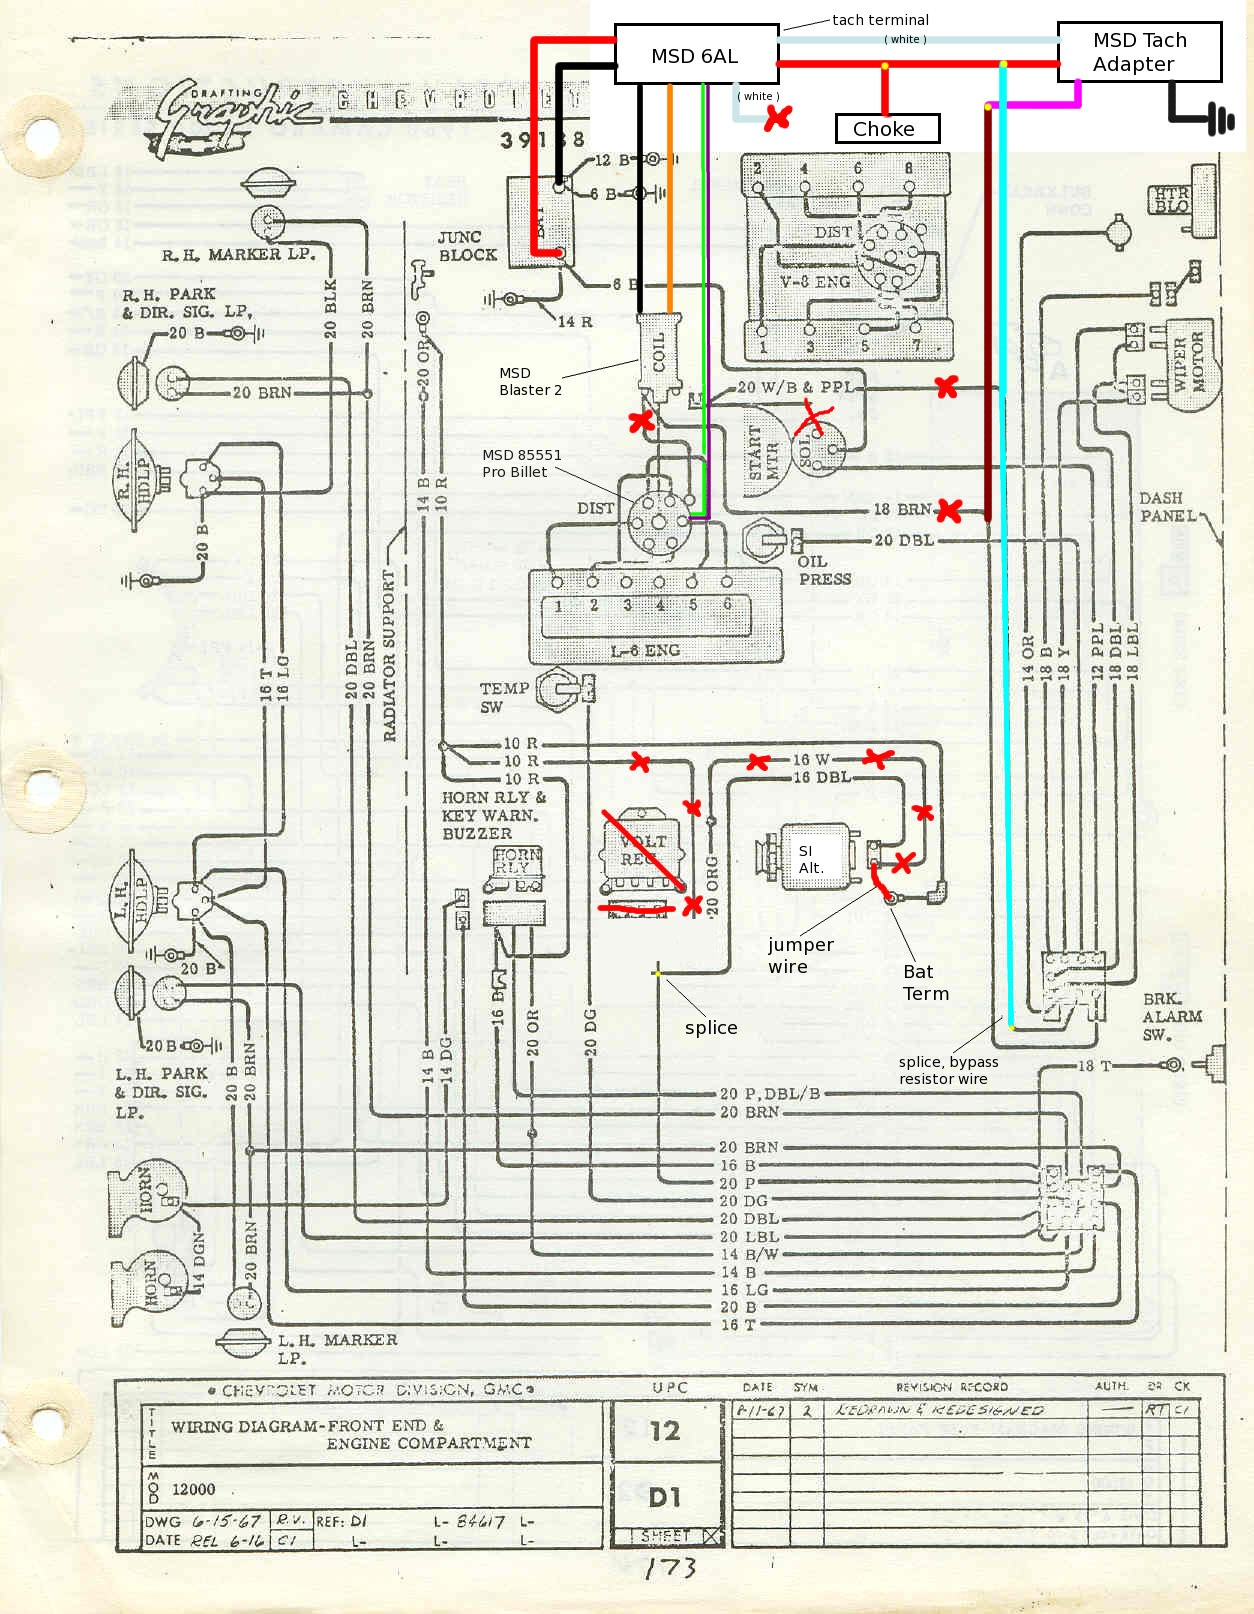 hight resolution of 1968 firebird wiring harness diagram example electrical wiring rh huntervalleyhotels co wiring diagrams for 95 firebird